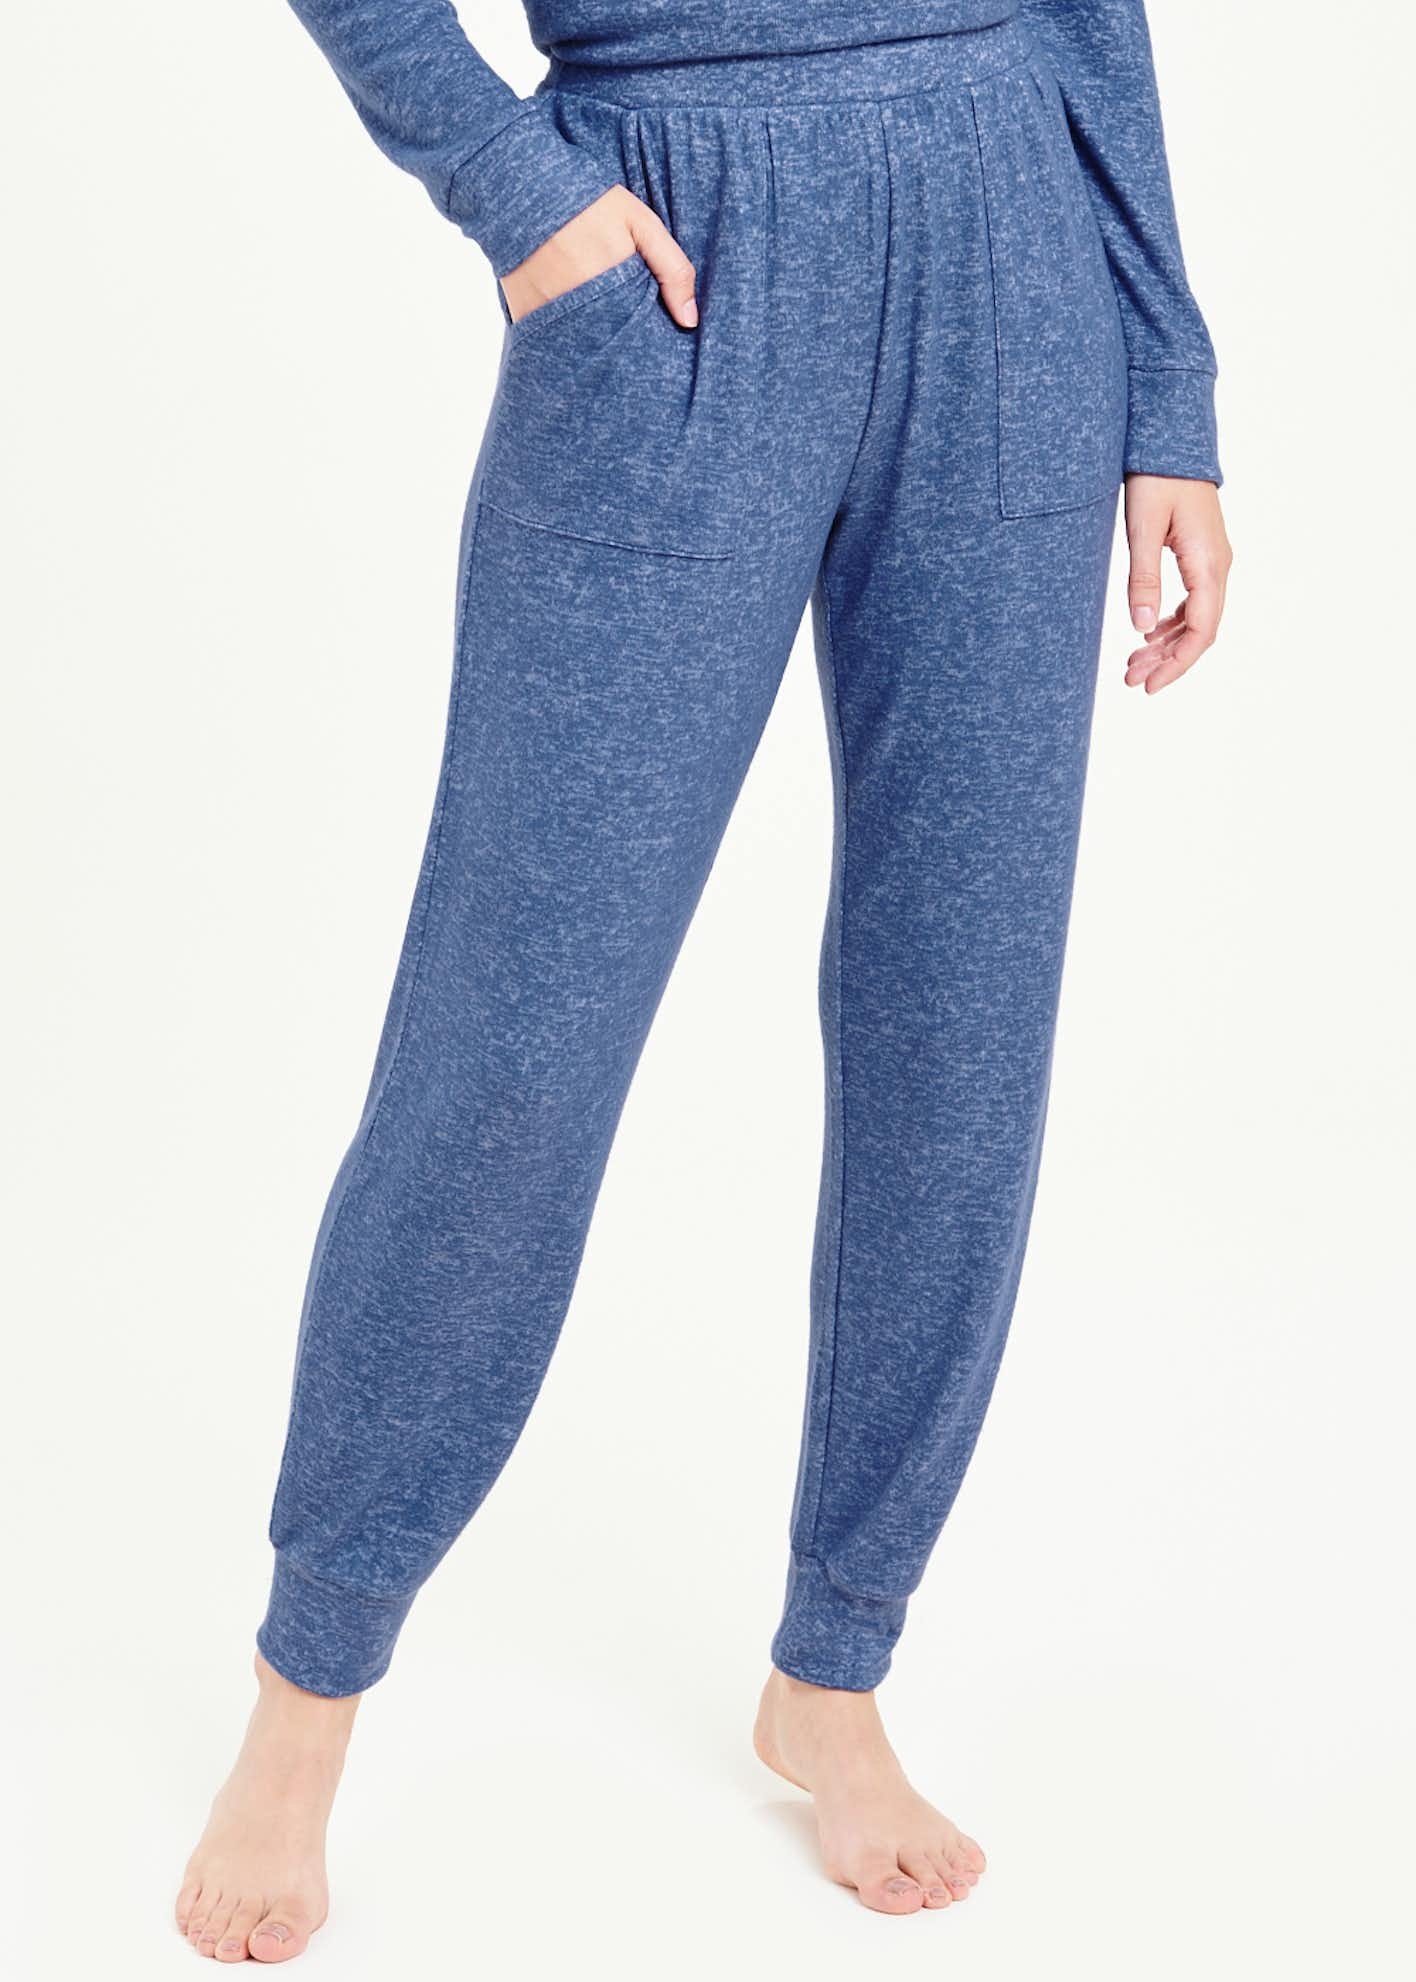 Super Soft Cuffed Pyjama Bottoms